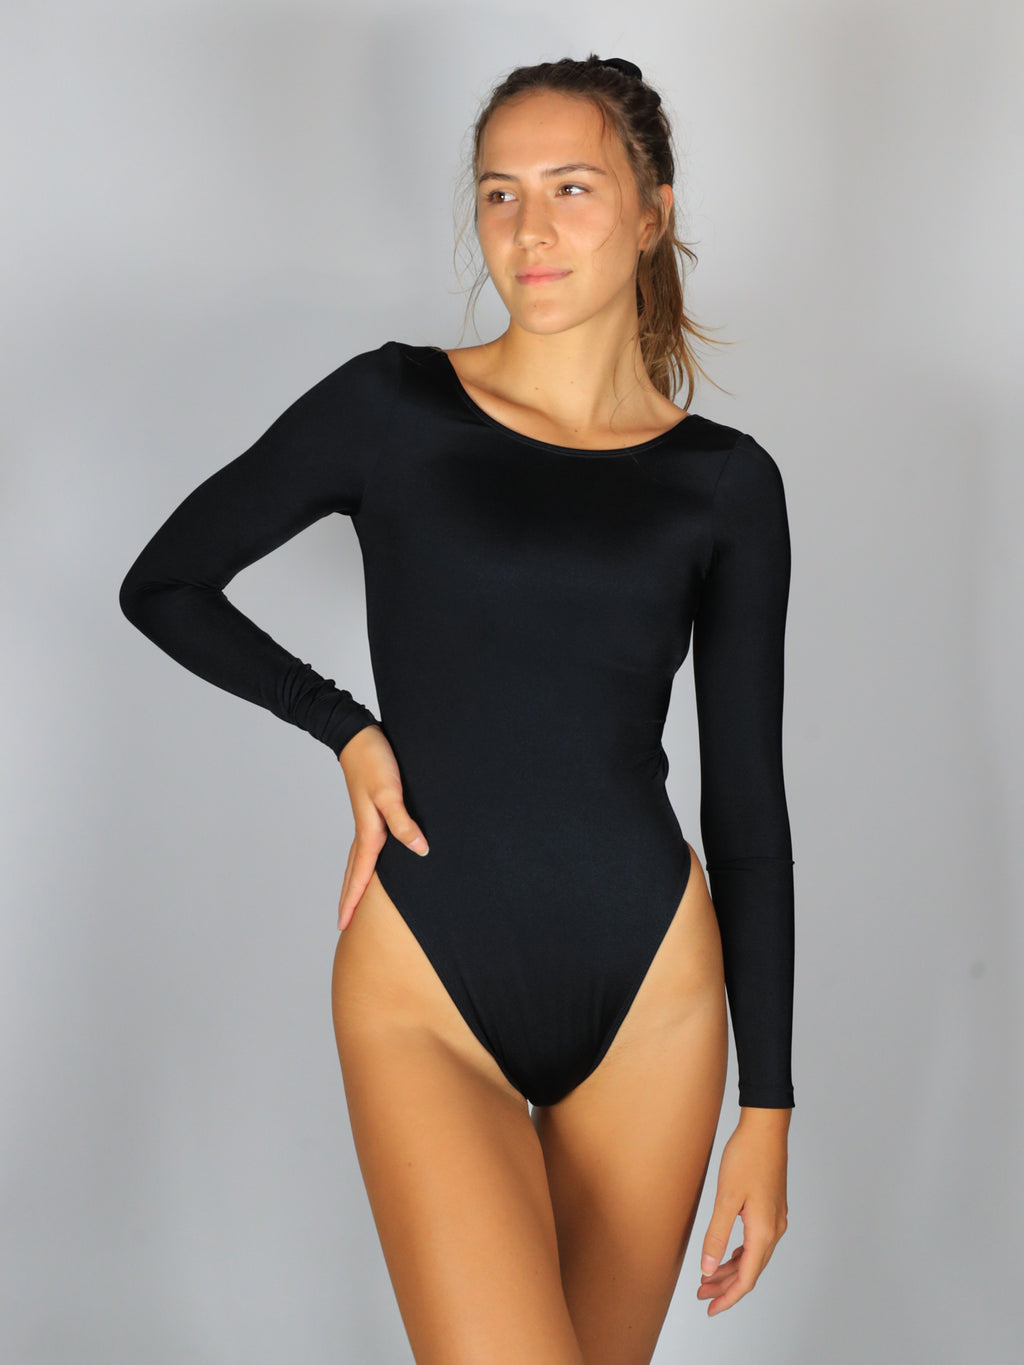 Daisy Duke One-Piece / Sparkle Black